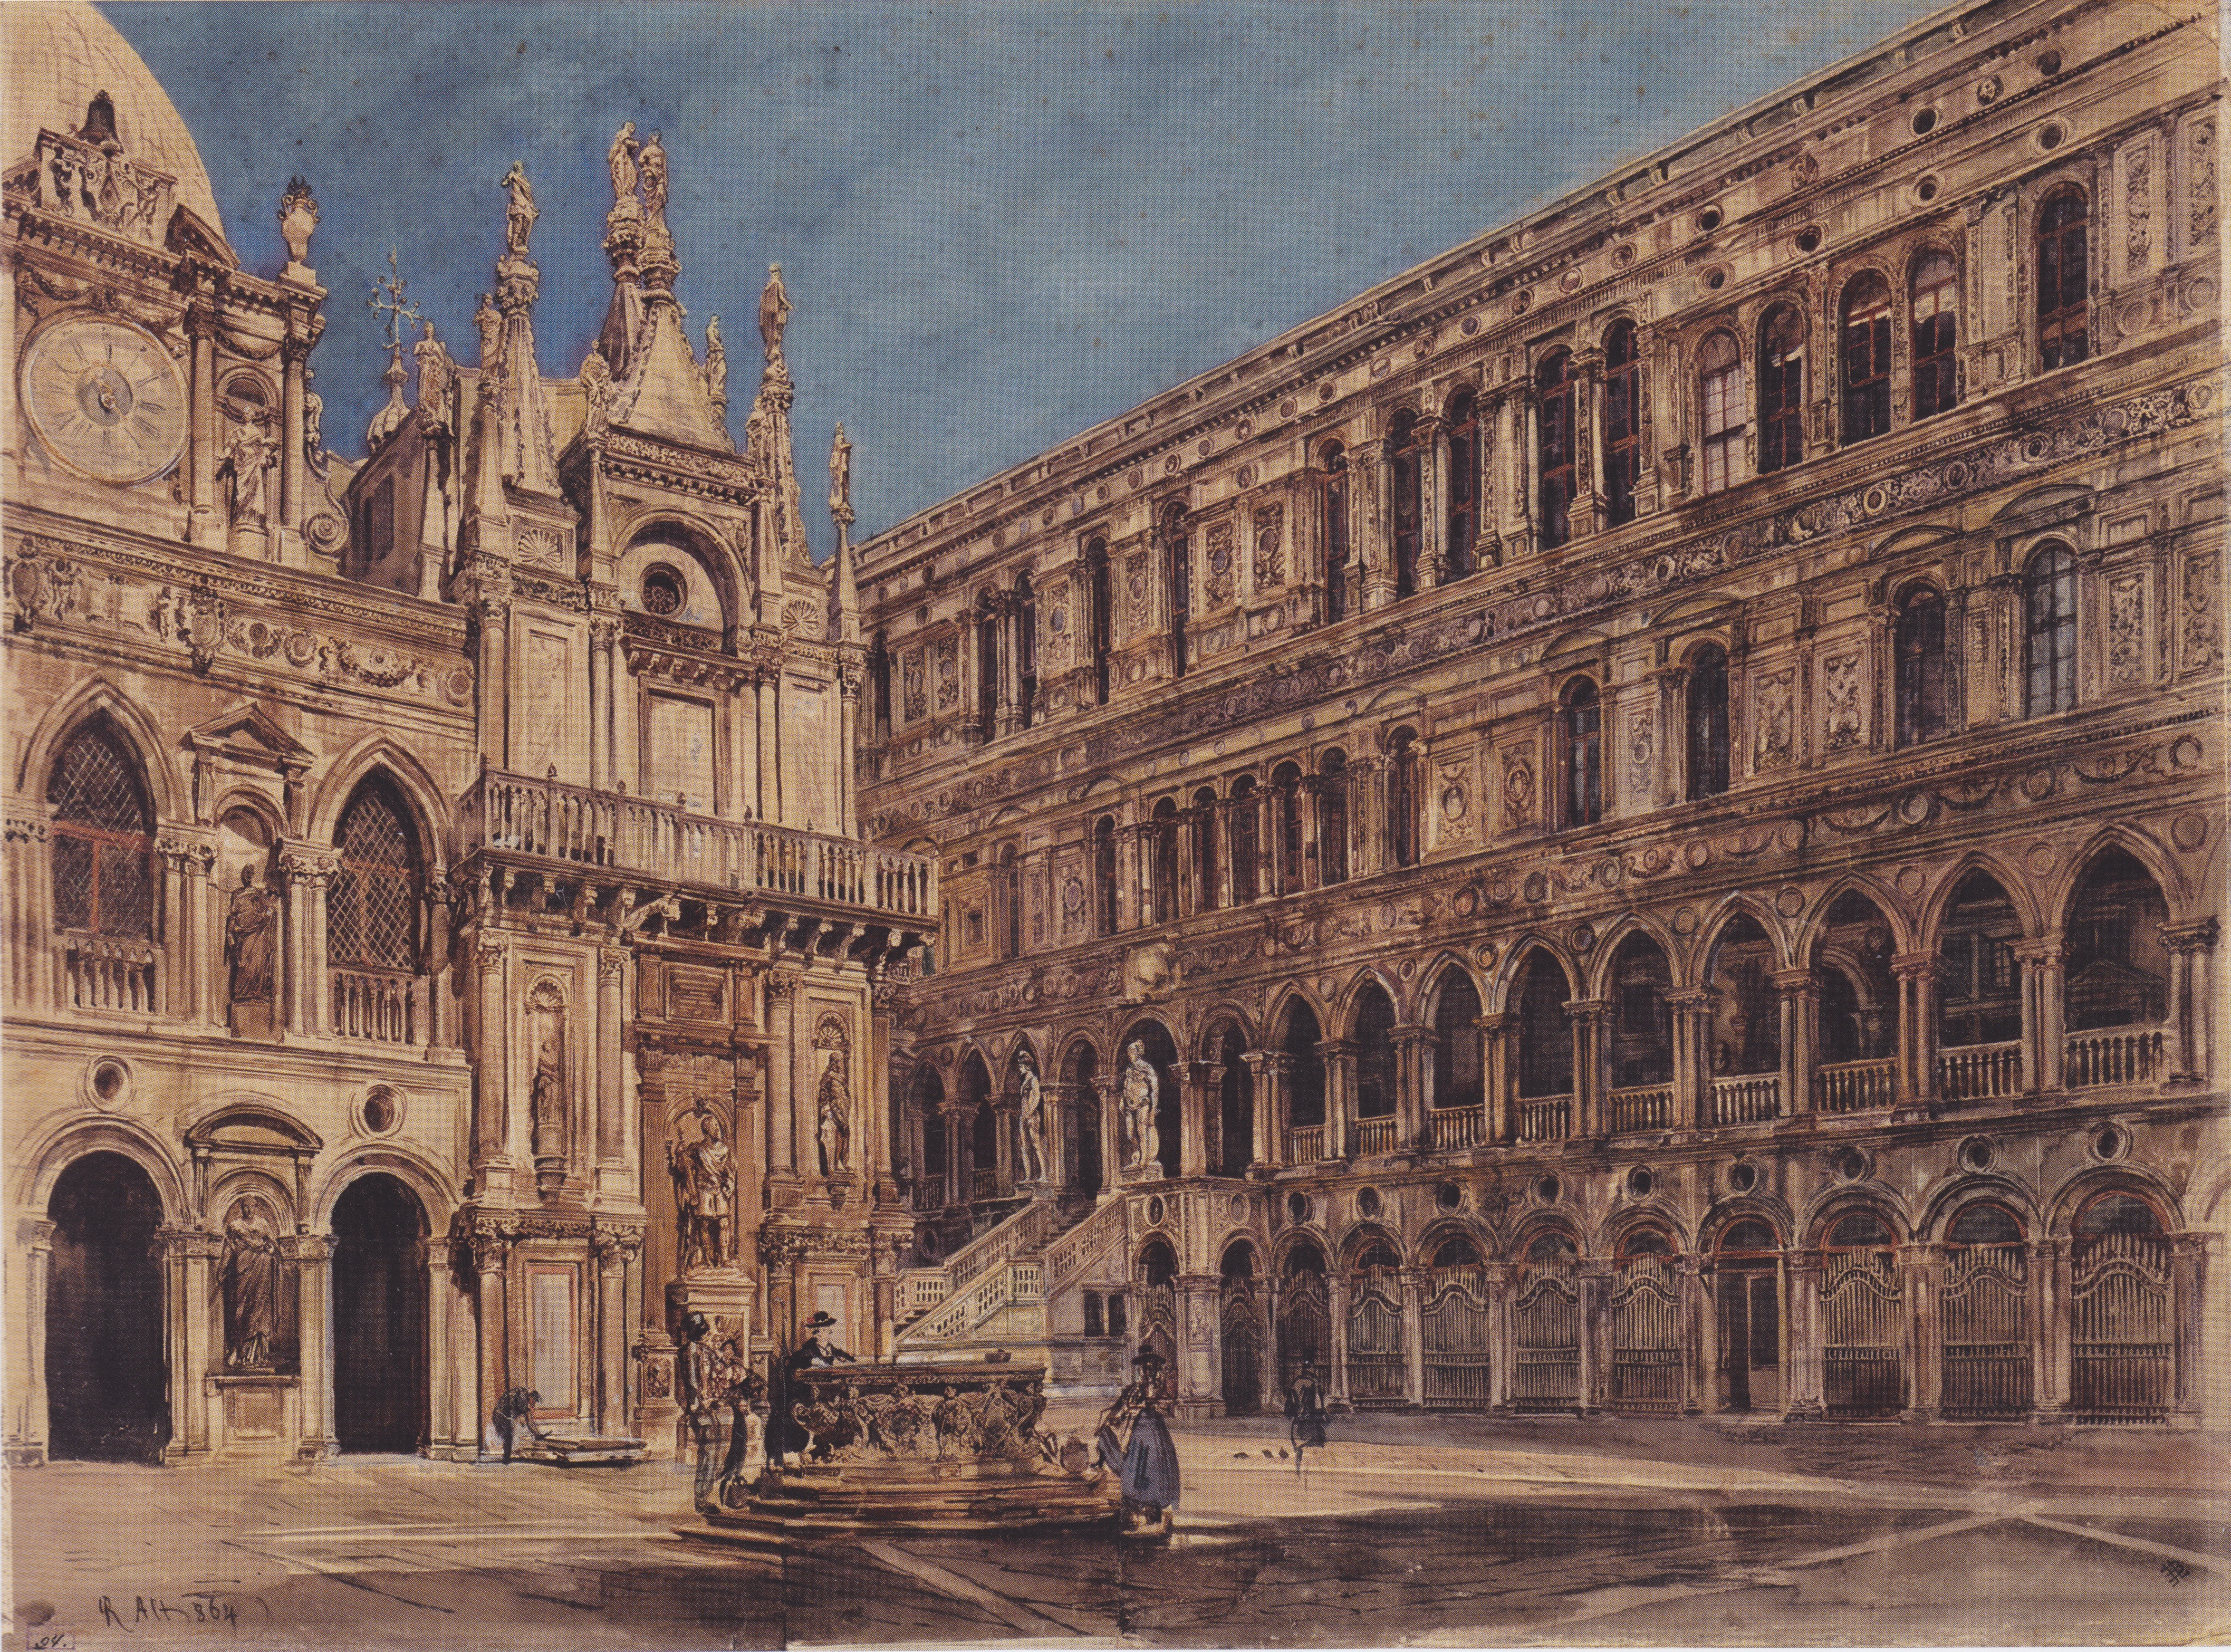 The courtyard of the Doge's Palace in Venice, 1867